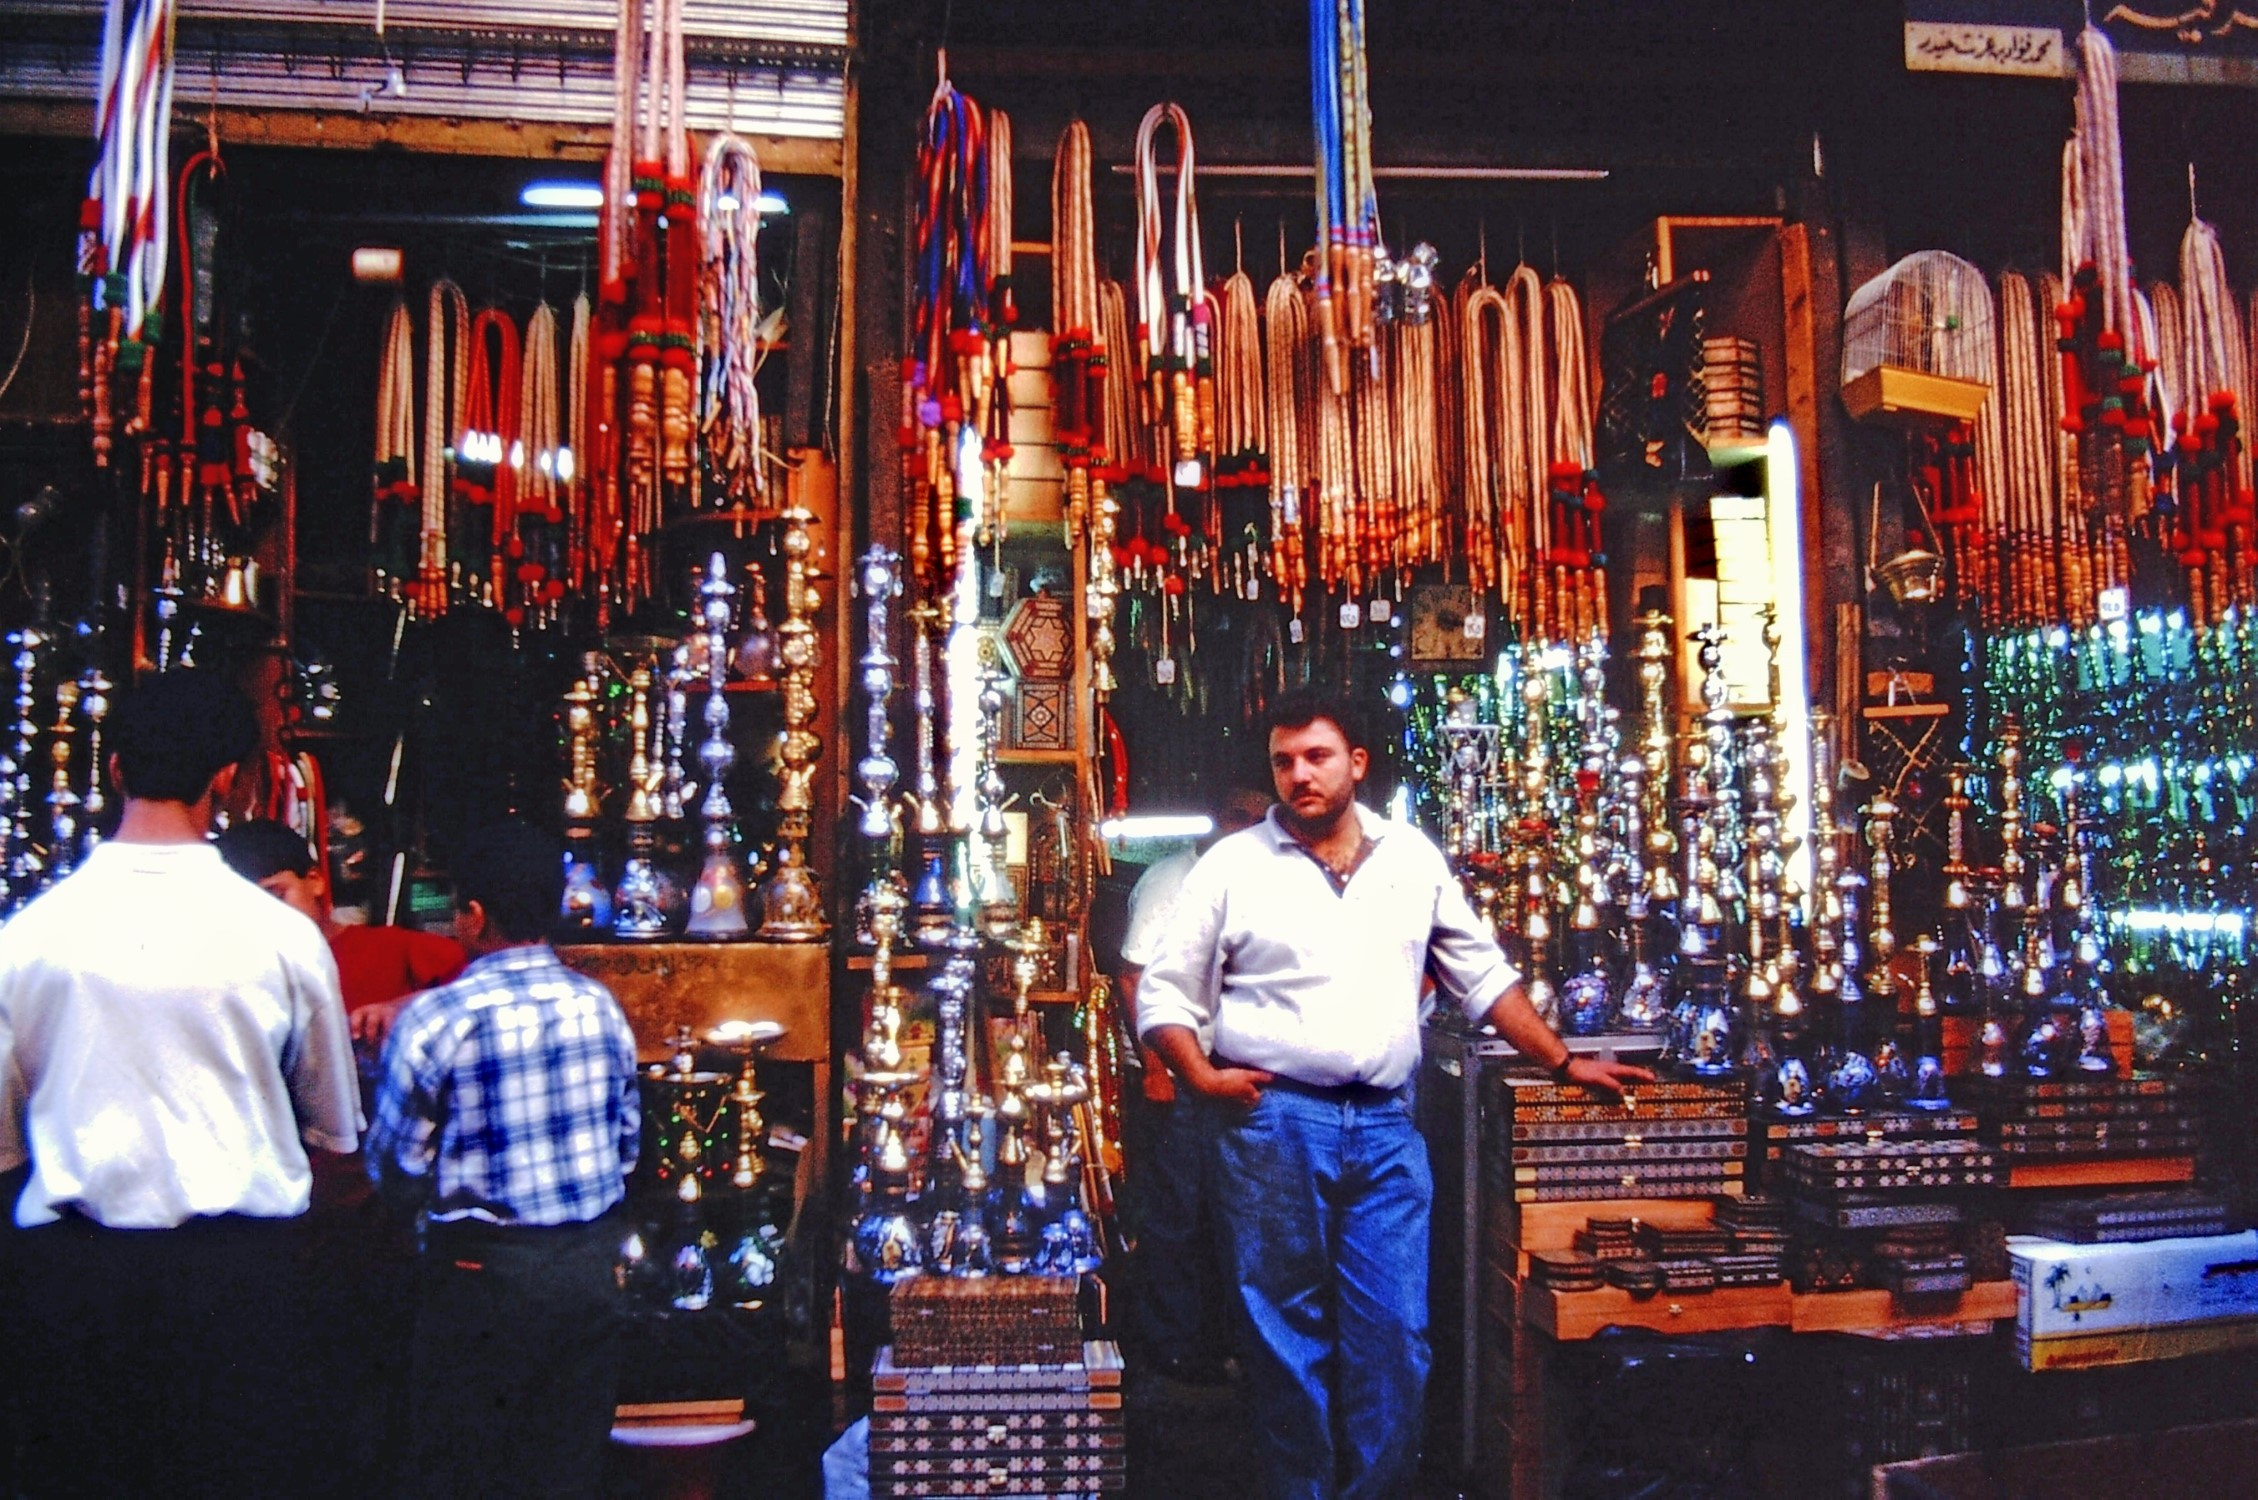 Men outside a shop selling lamps and worry beads